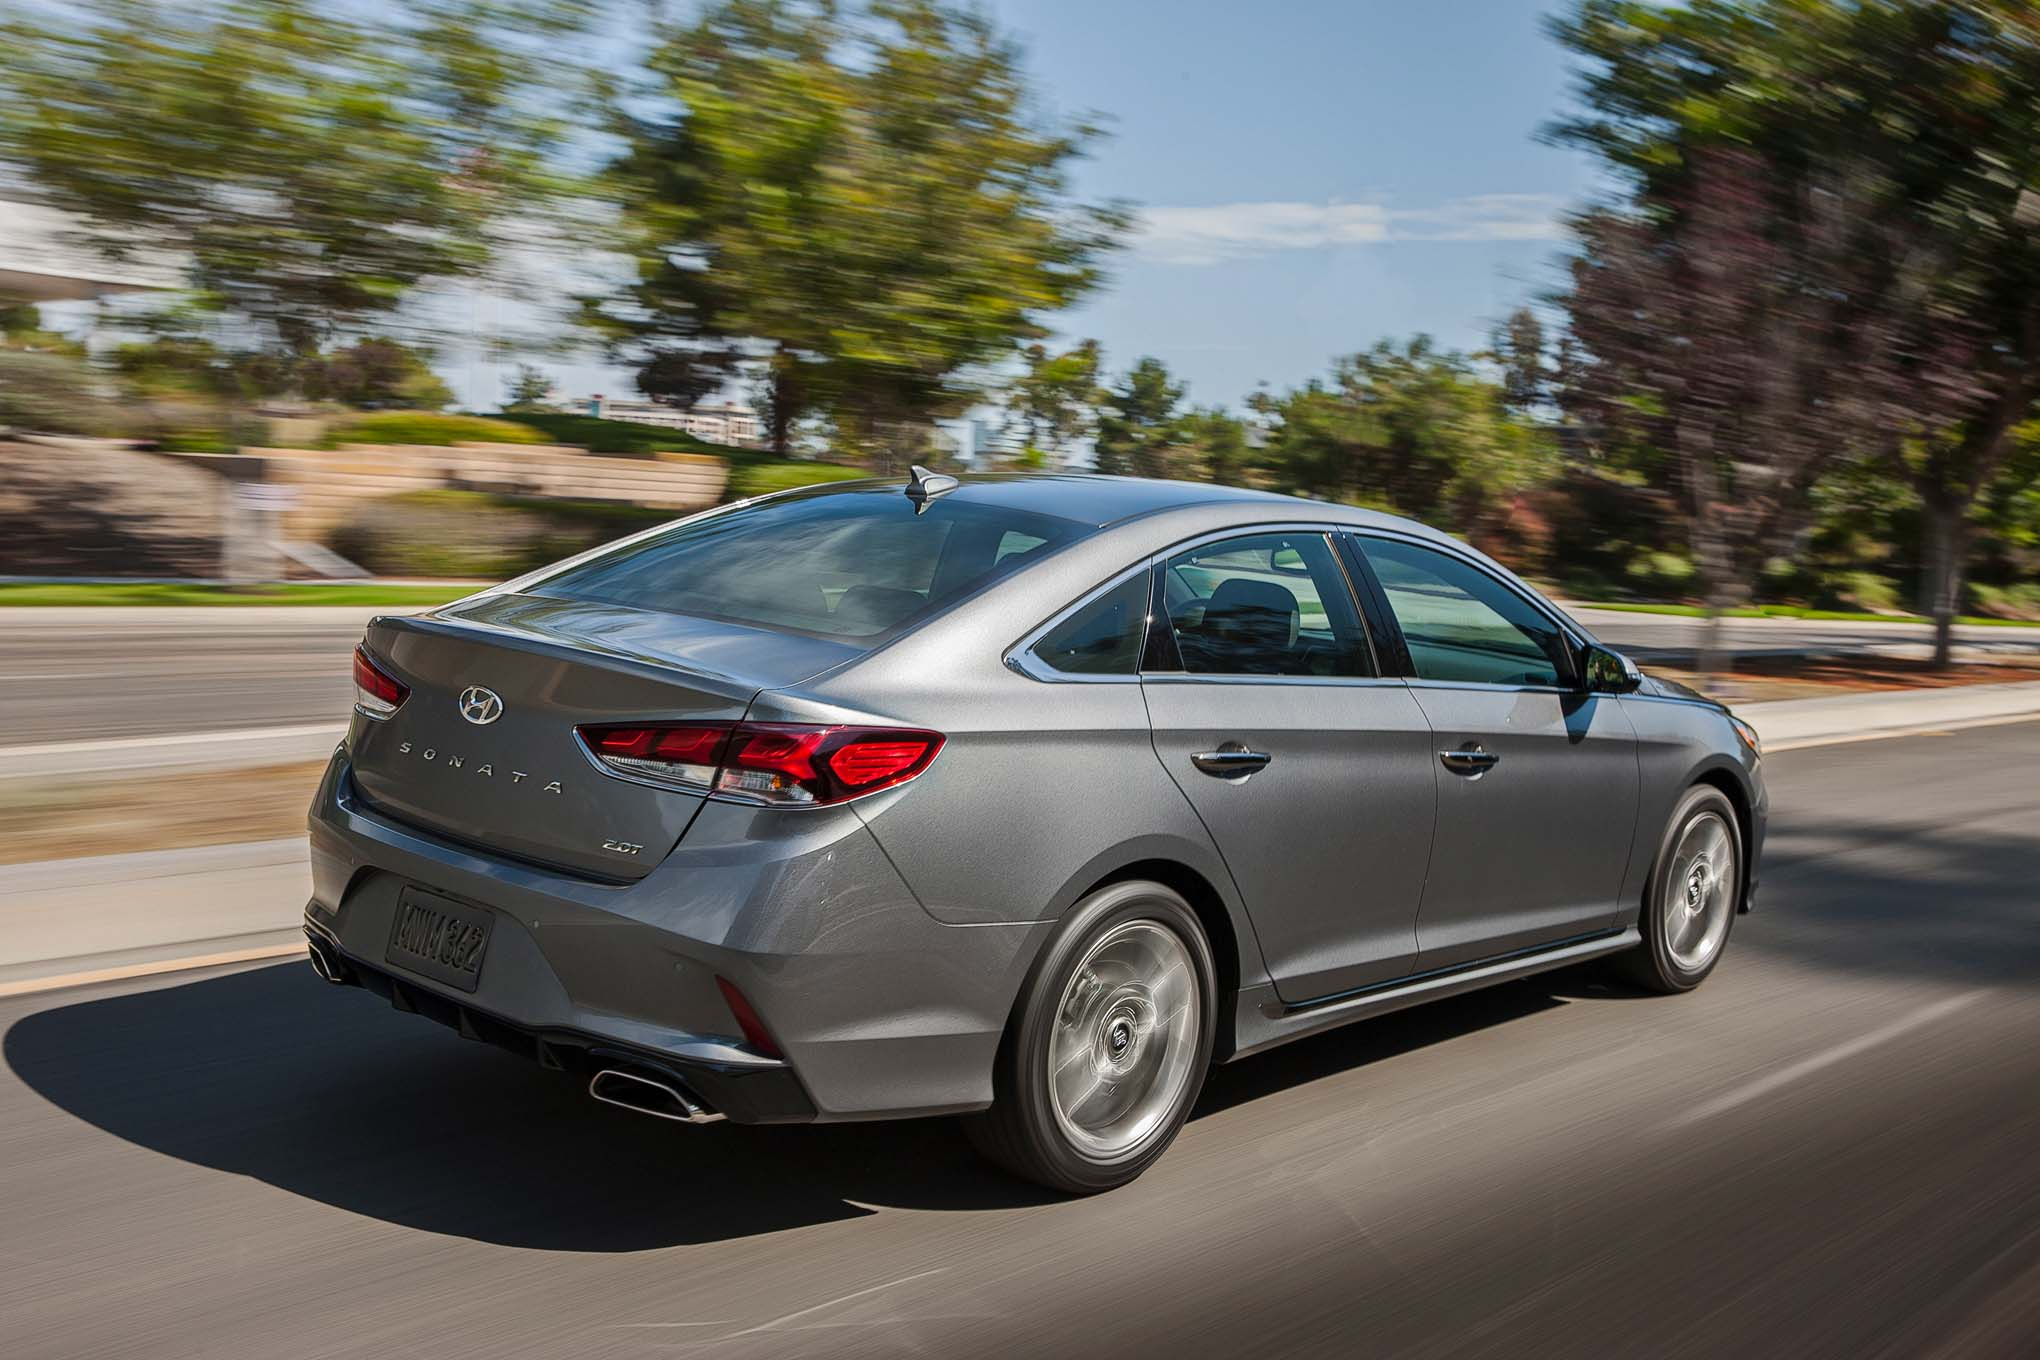 2018 Hyundai Sonata First Drive Review Automobile Magazine